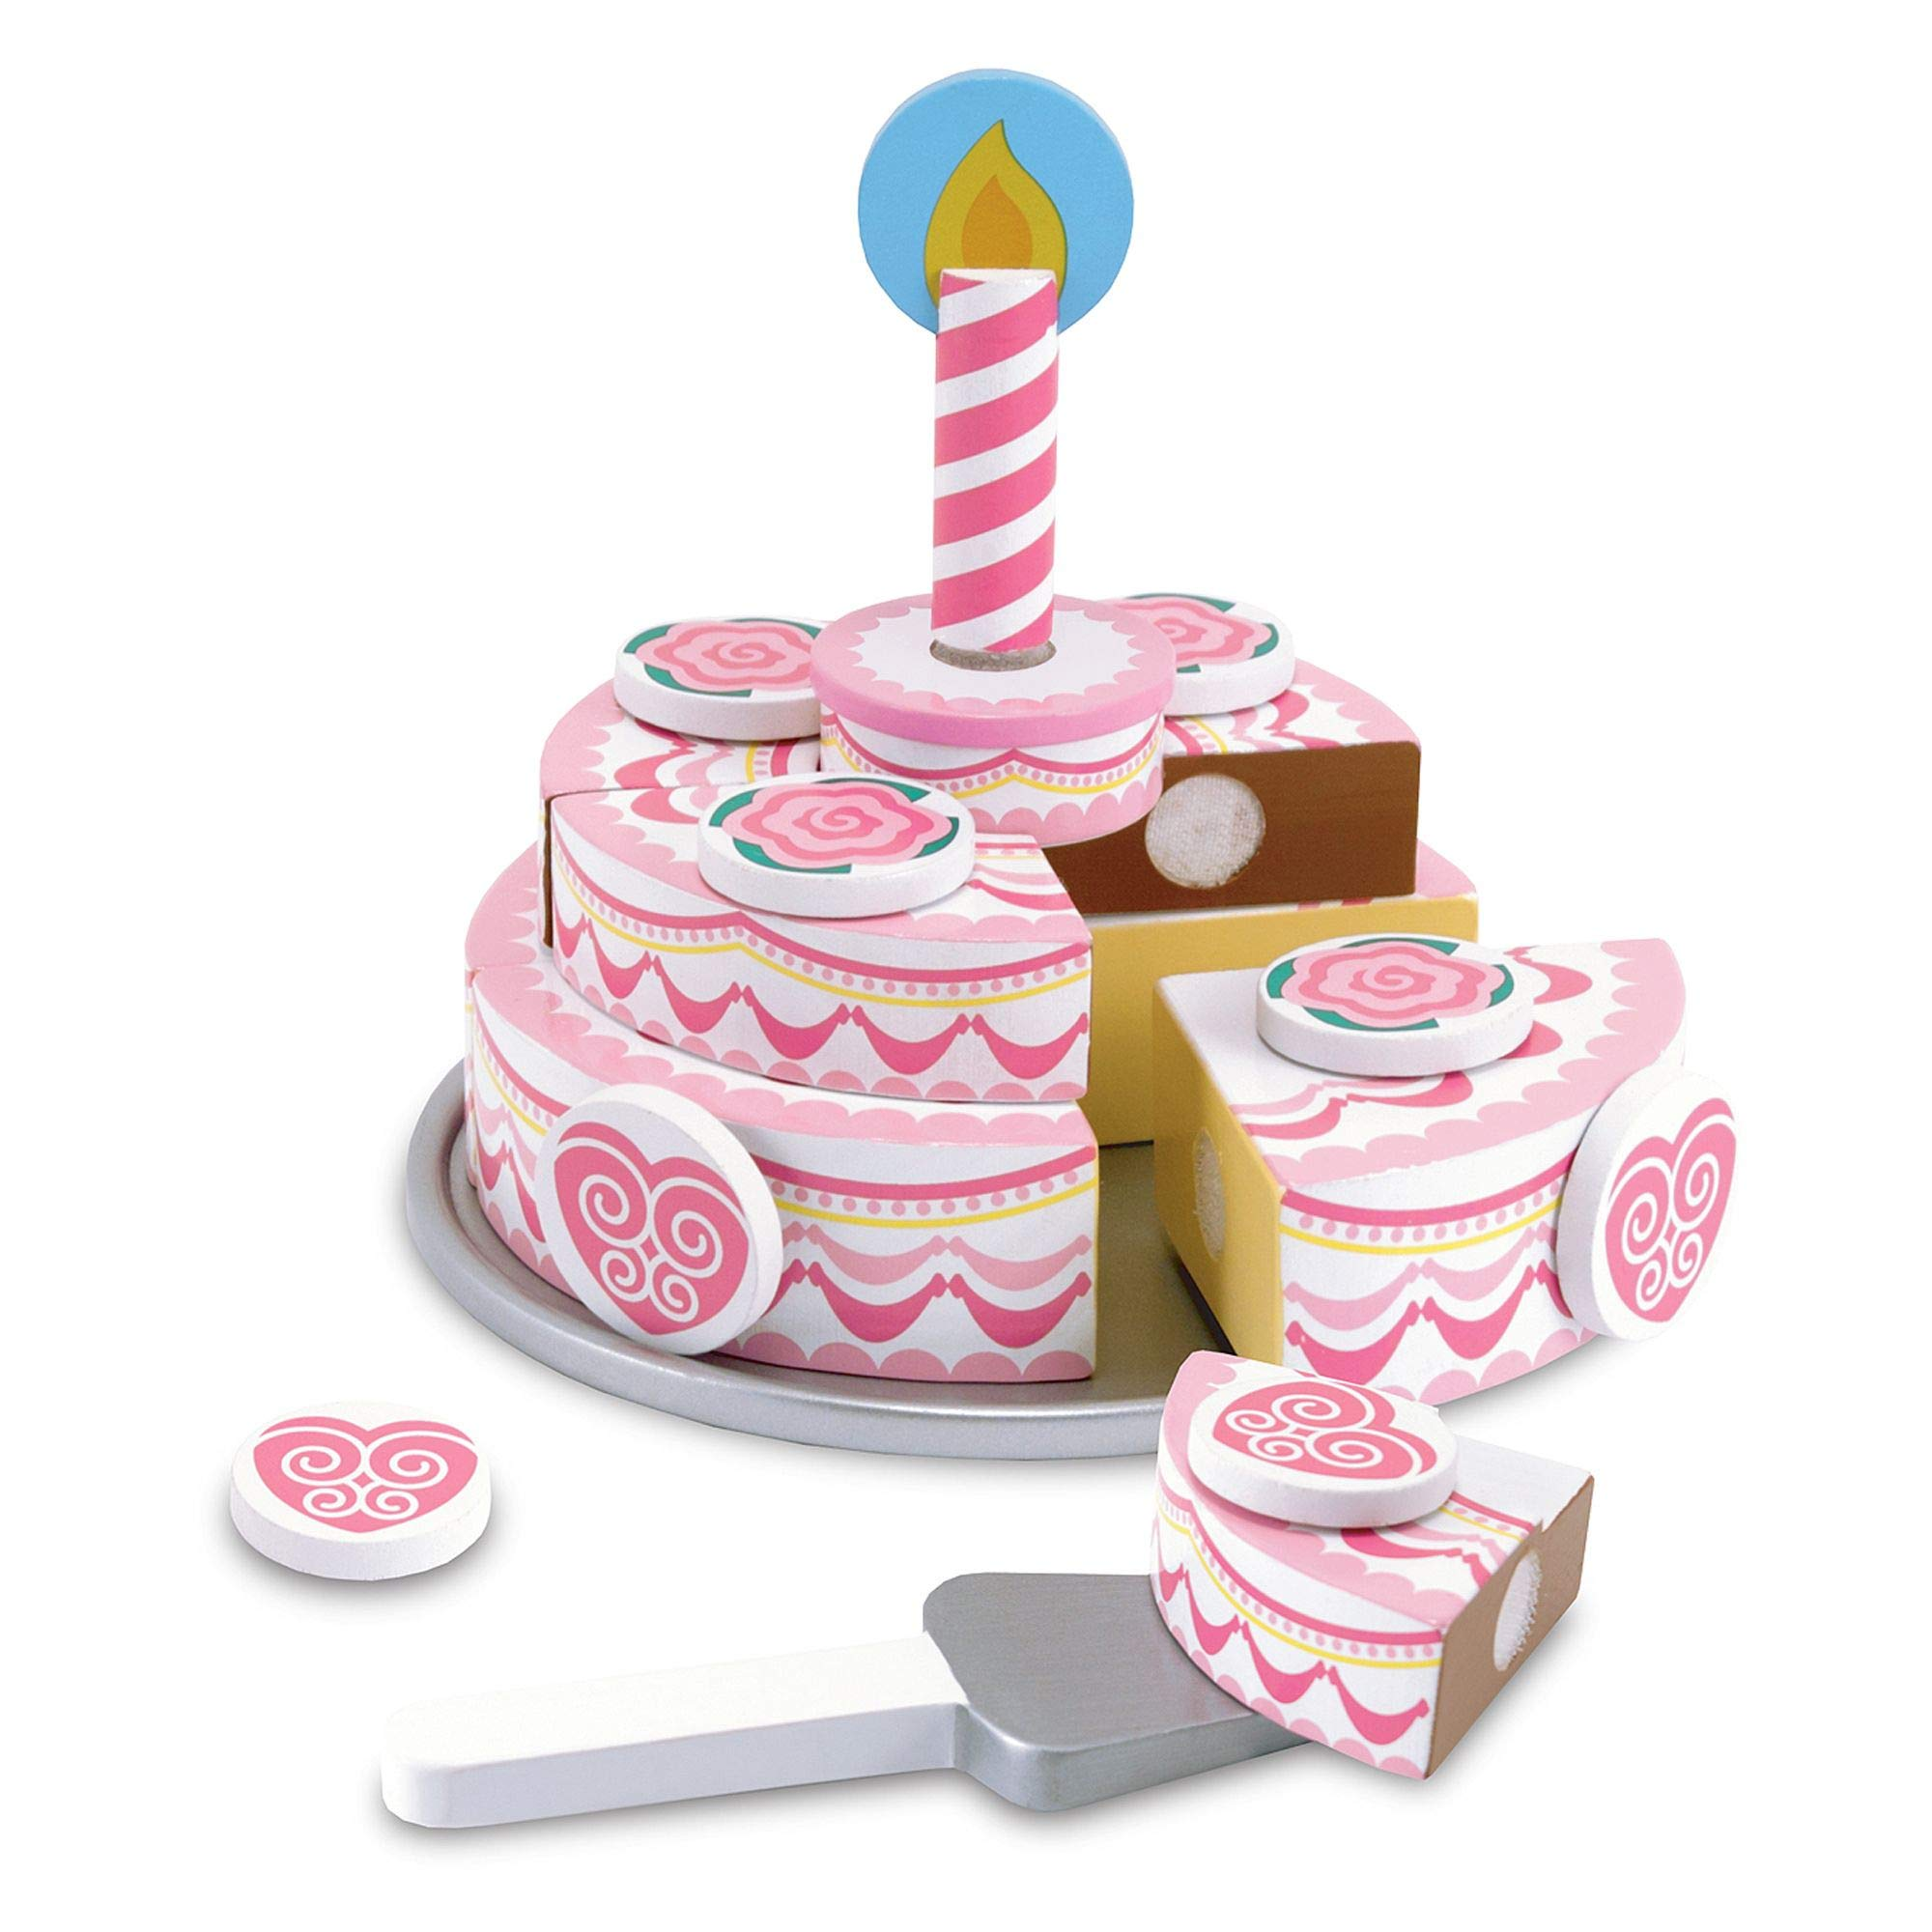 Melissa & Doug Triple-Layer Party Cake, Wooden Play Food, Tiered Wooden Cake, Self-Sticking Tabs, Sturdy Construction, 13.5'' H x 10.5'' W x 2.7'' L by Melissa & Doug